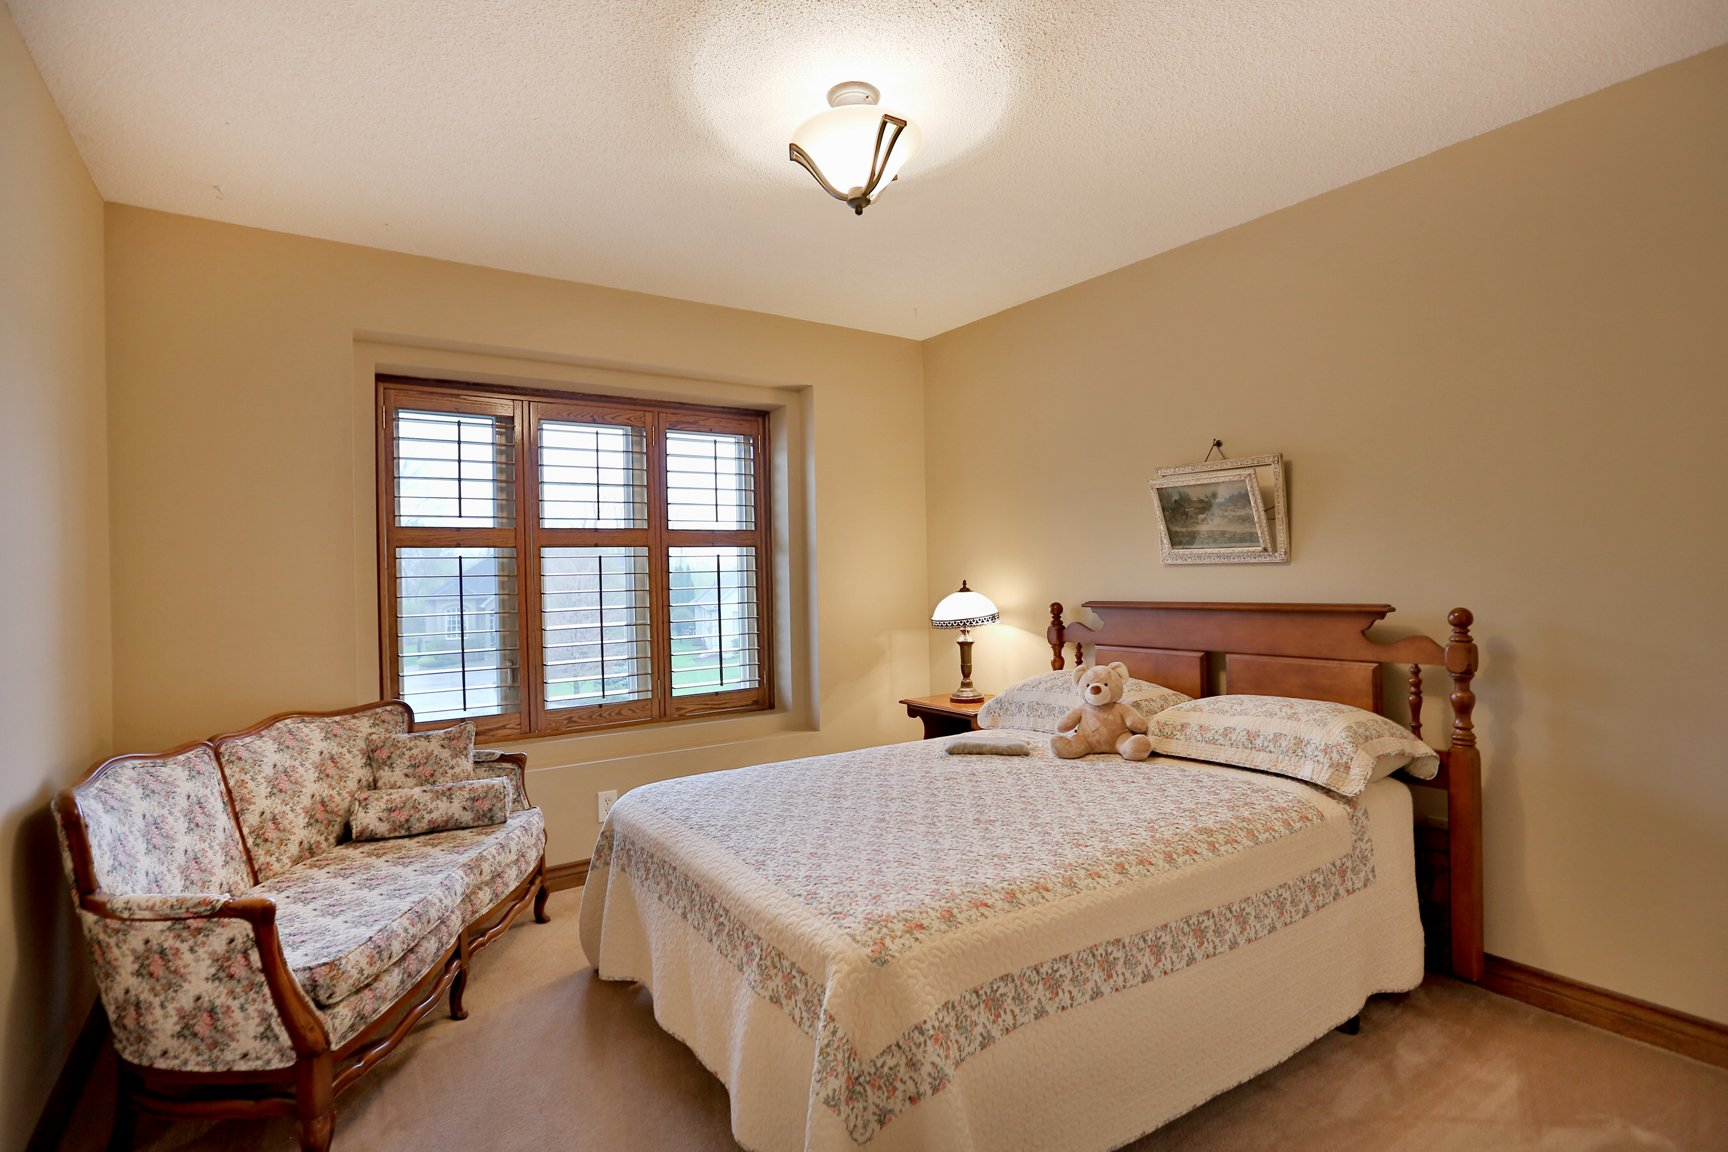 85 Galley bedroom - Recently SOLD in Ancaster